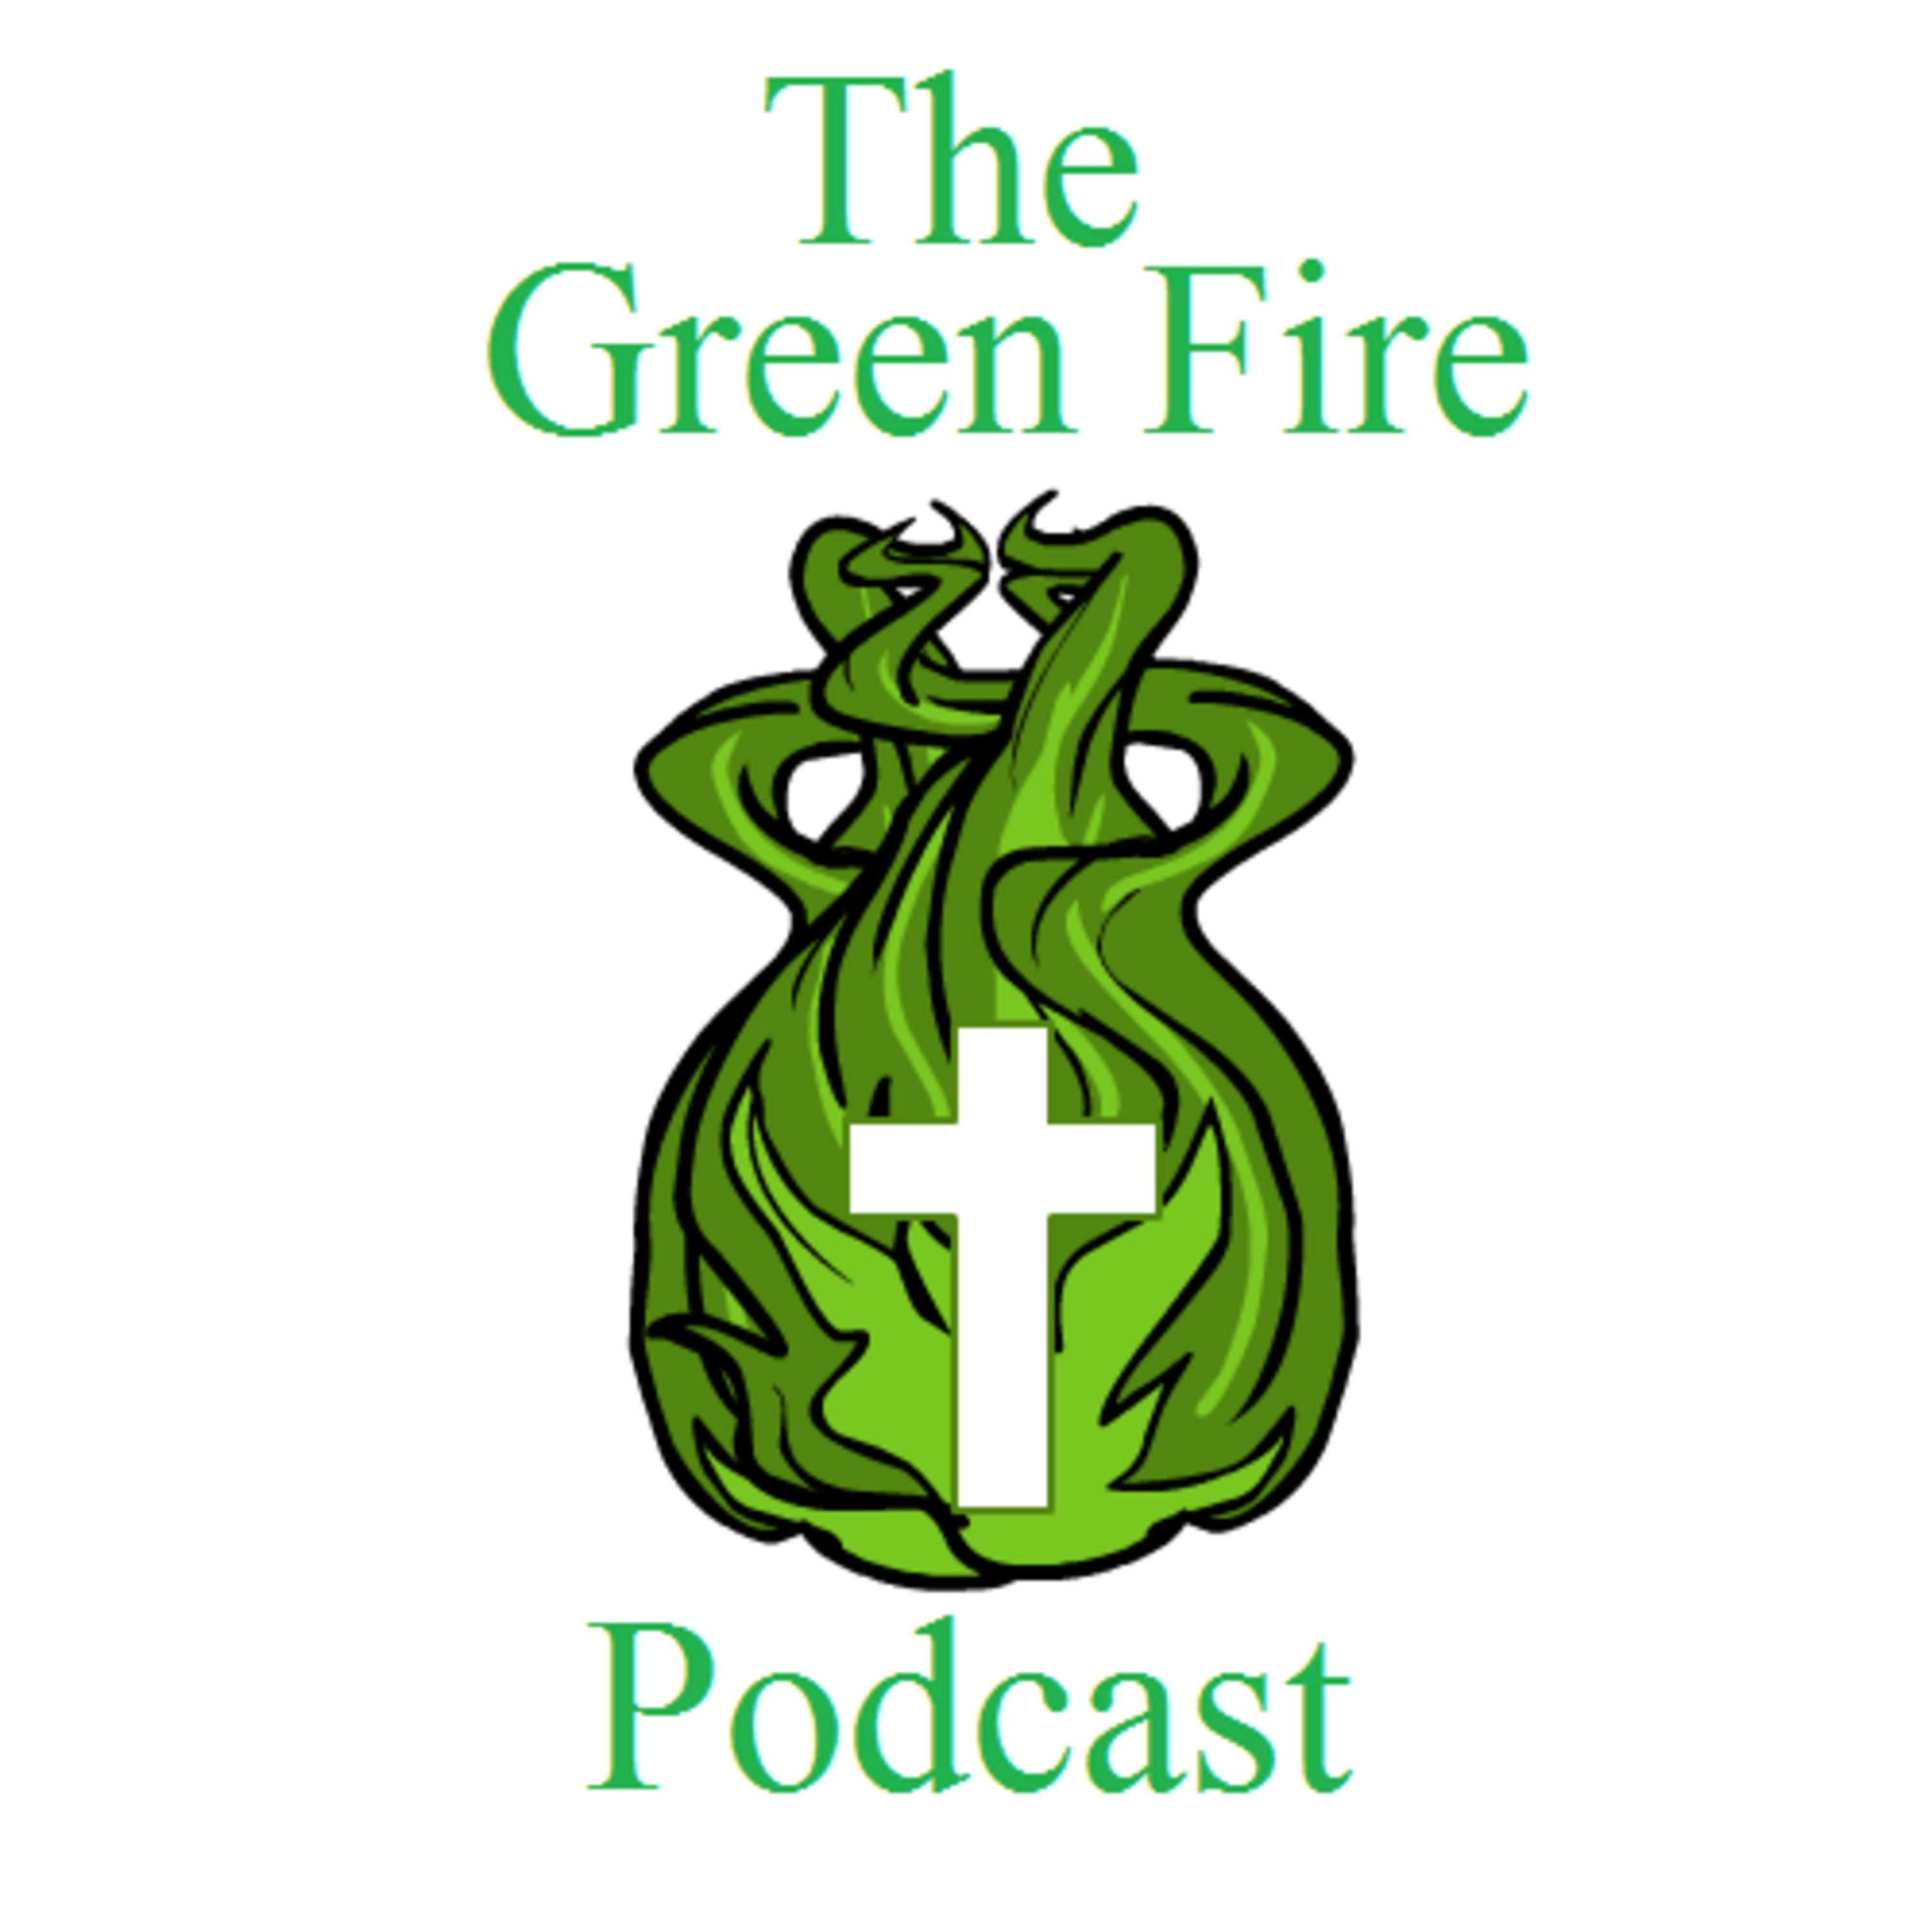 The Green Fire Podcast | Listen via Stitcher for Podcasts